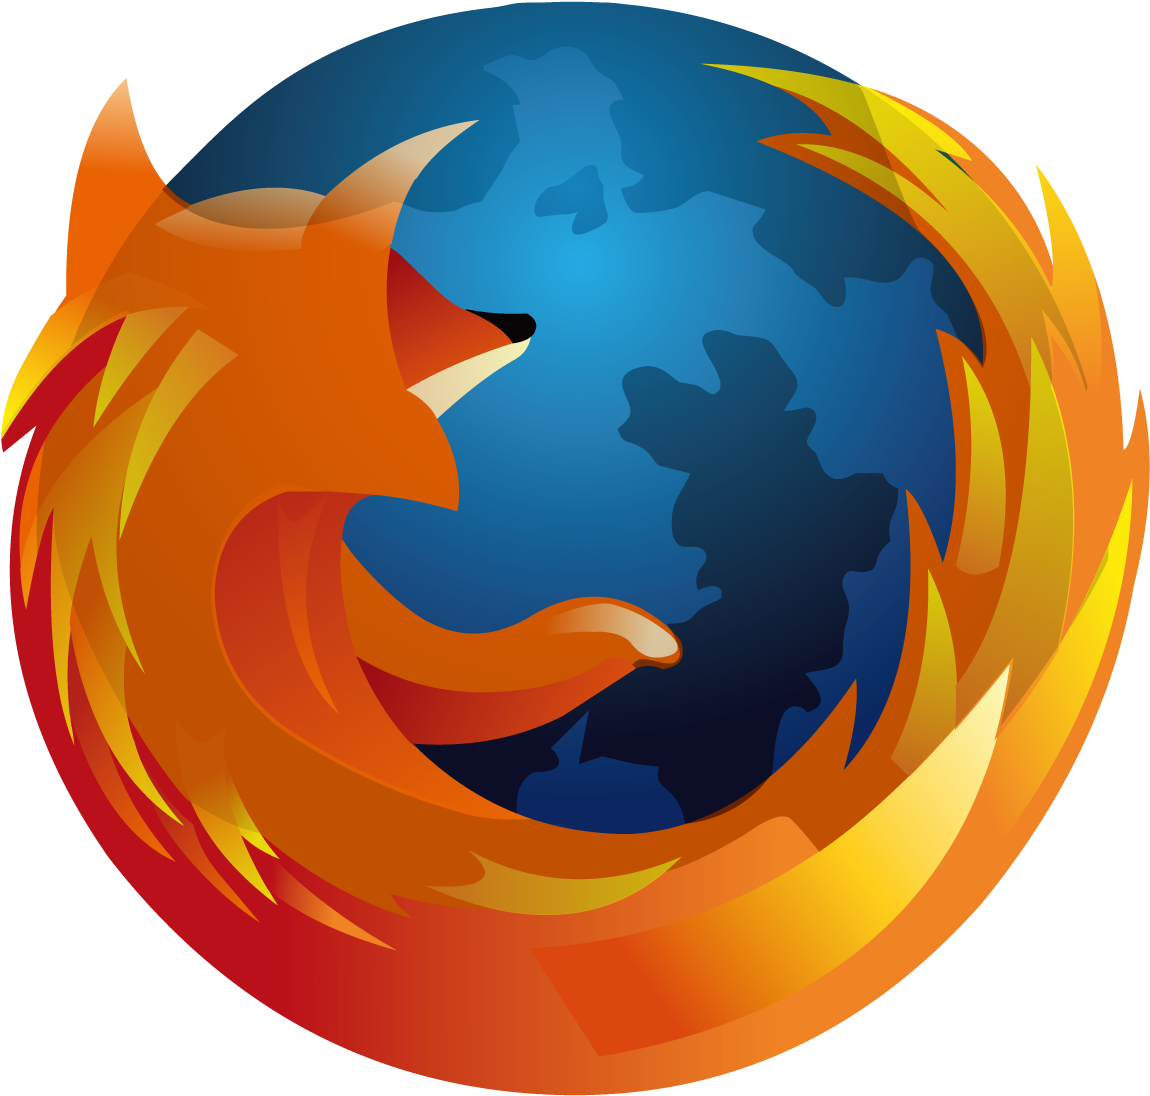 Download Internet Explorer Google Chrome Mozilla Firefox Mozilla Firefox Logo Vector Png Image With No Background Pngkey Com